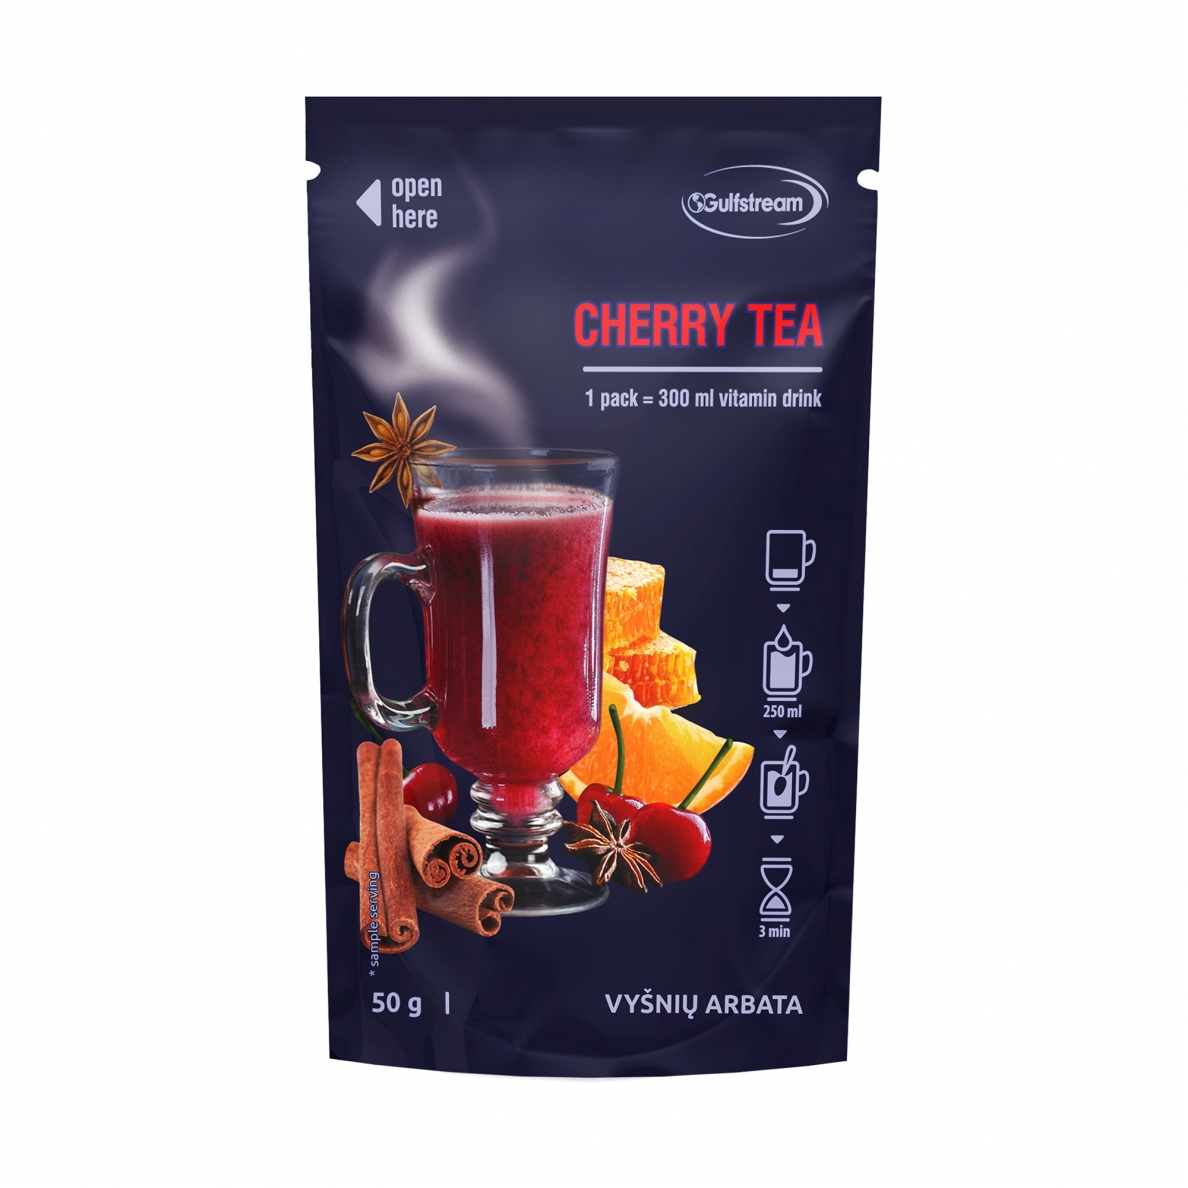 Gulfstream Cherry Tea